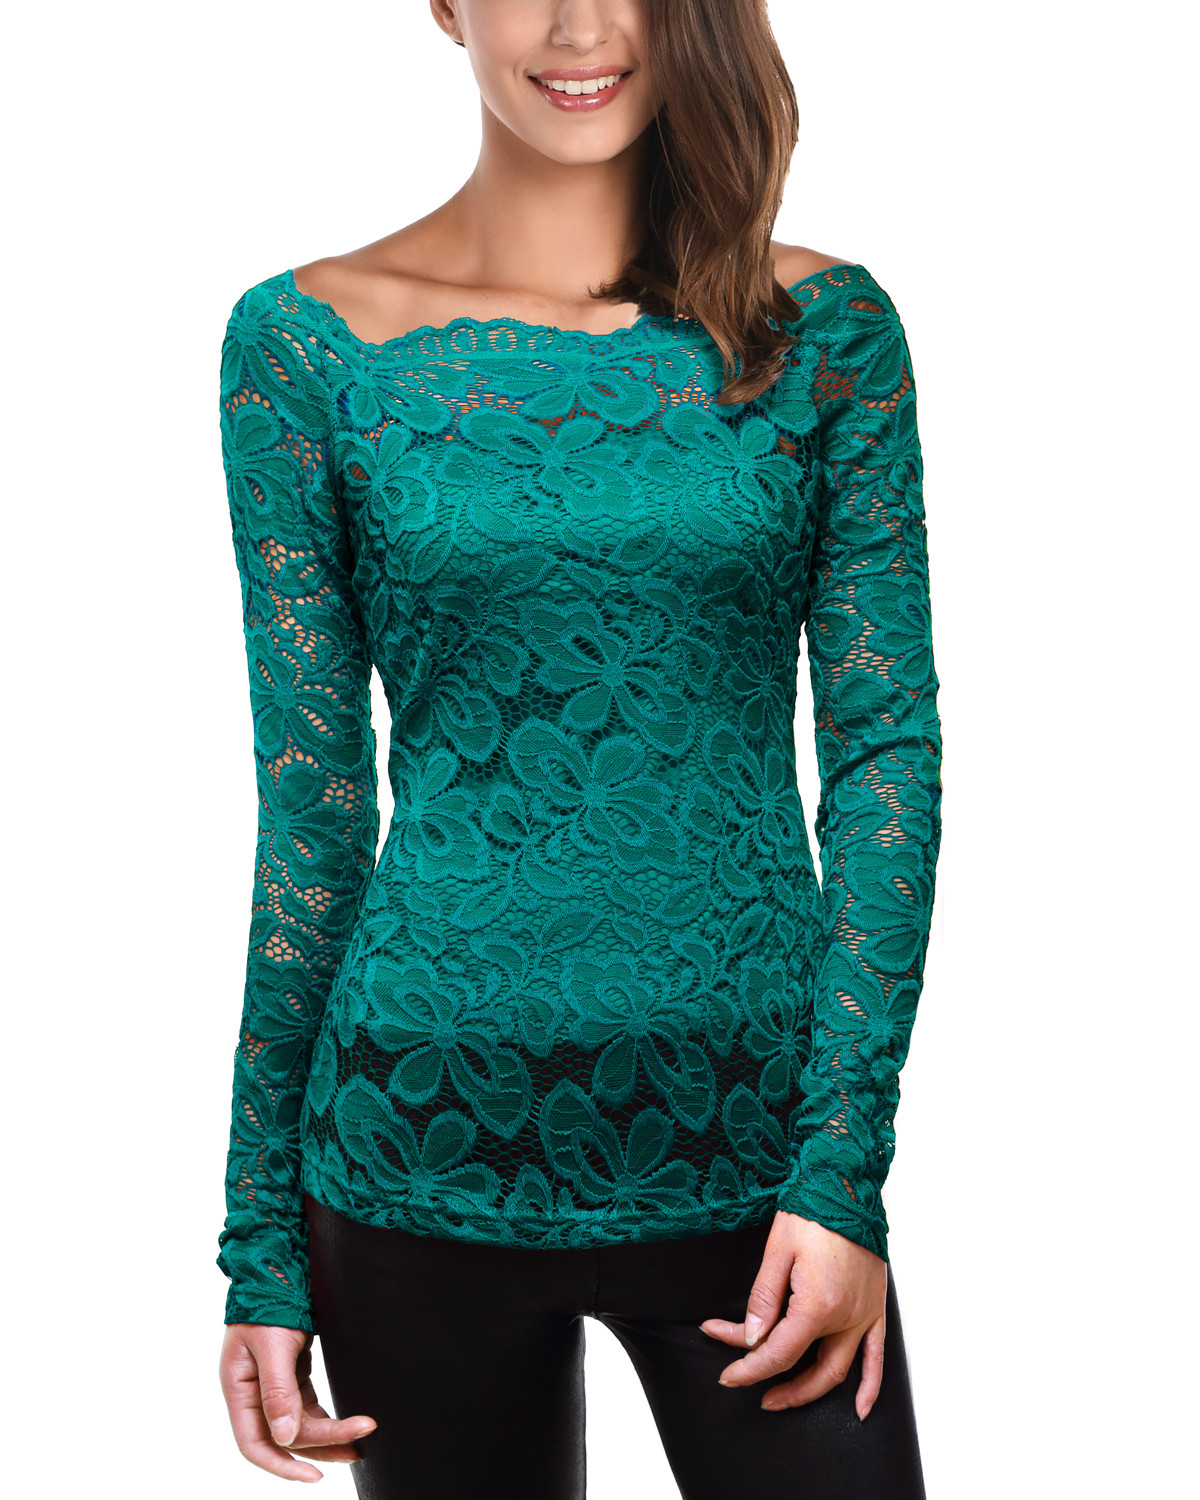 Women's Blouse Patterns Beautiful Women S Trendy Floral Lace Long Sleeves Tunic tops Blouse Of Charming 43 Pictures Women's Blouse Patterns